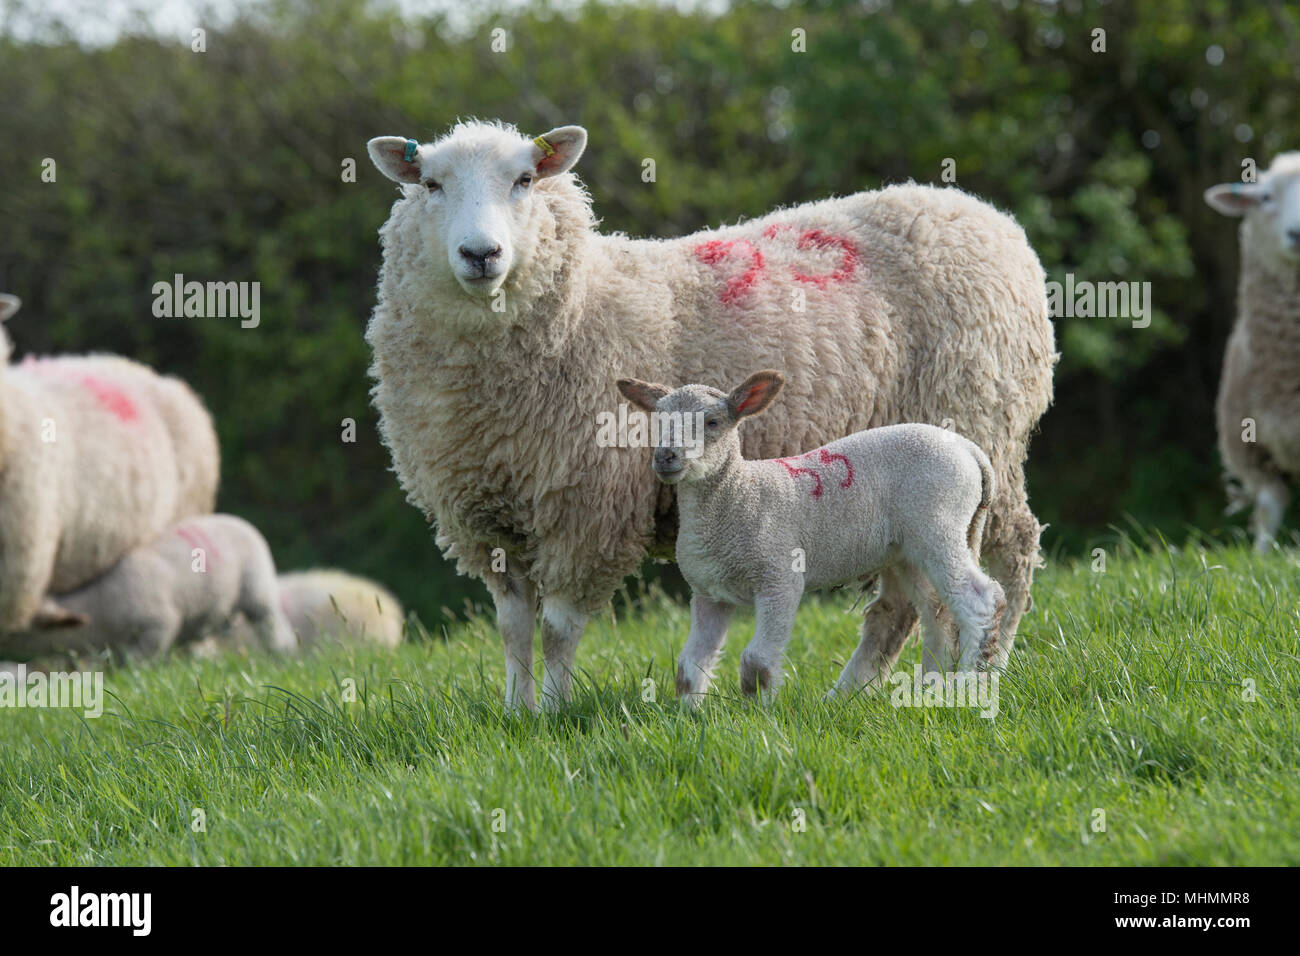 ewes and lambs in a sheep flock Stock Photo